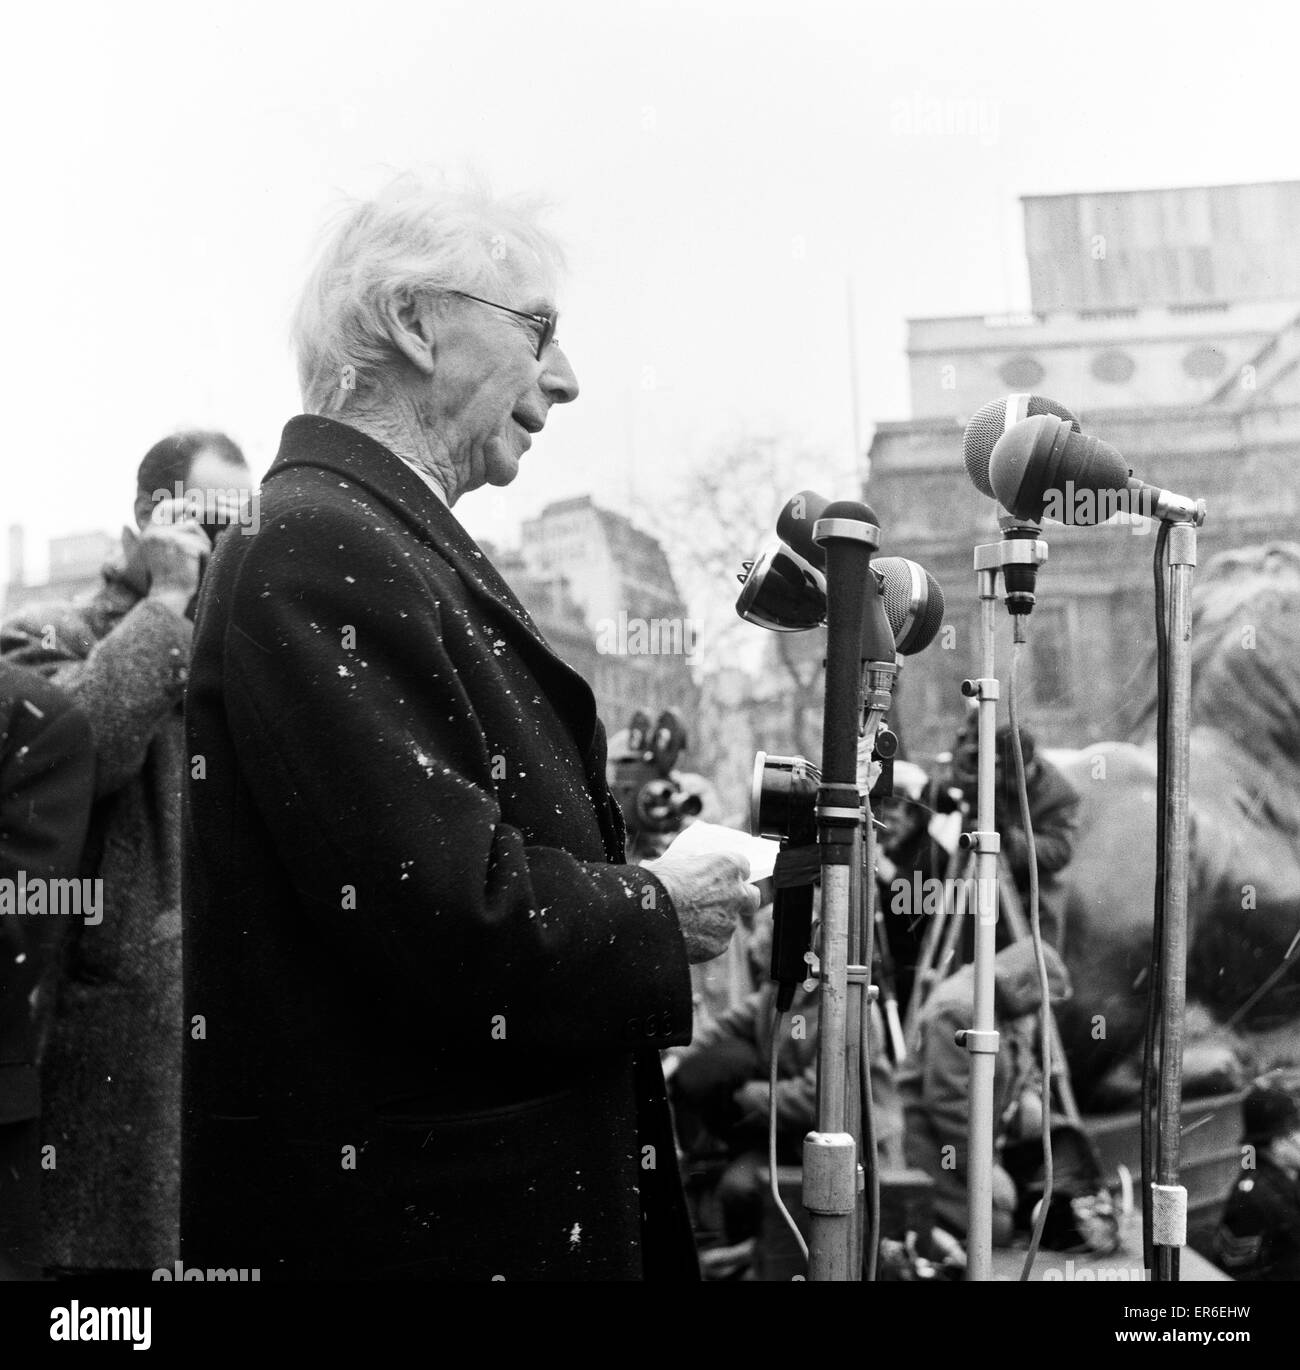 Veteran Philosopher Bertrand Russell braved today's Arctic weather to address a meeting to several thousand supportersStock Photo